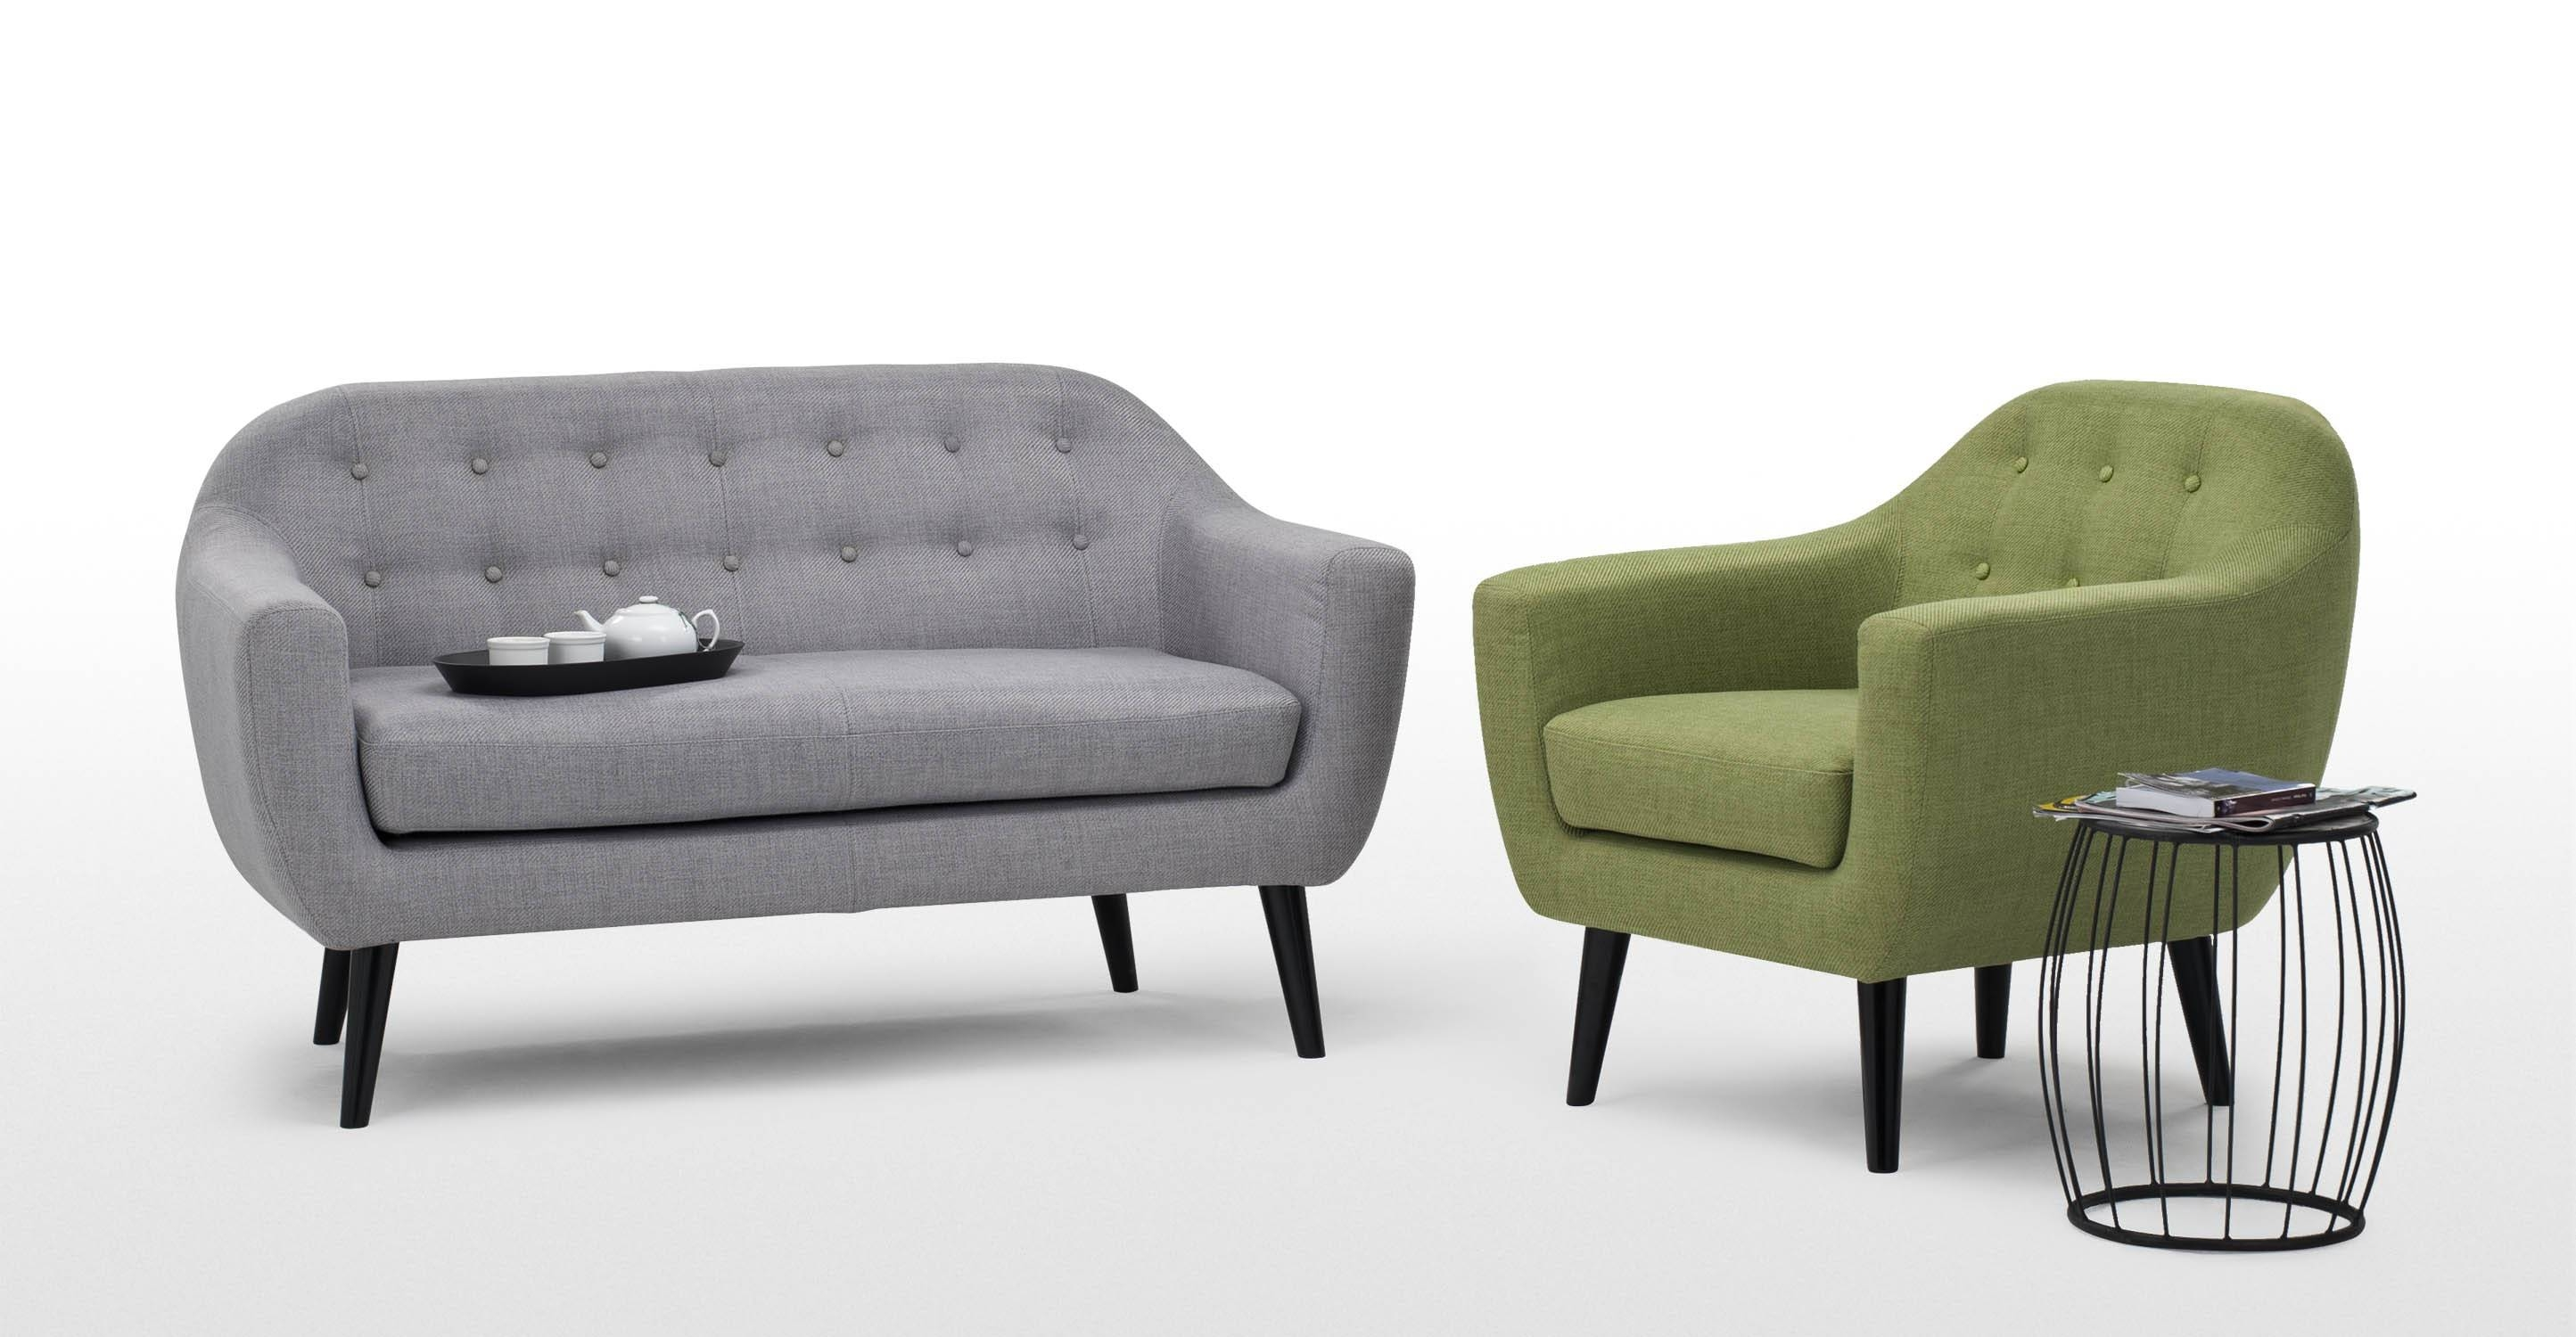 Ritchie 2 Seater Sofa In Pearl Grey | Made for Two Seater Chairs (Image 19 of 30)